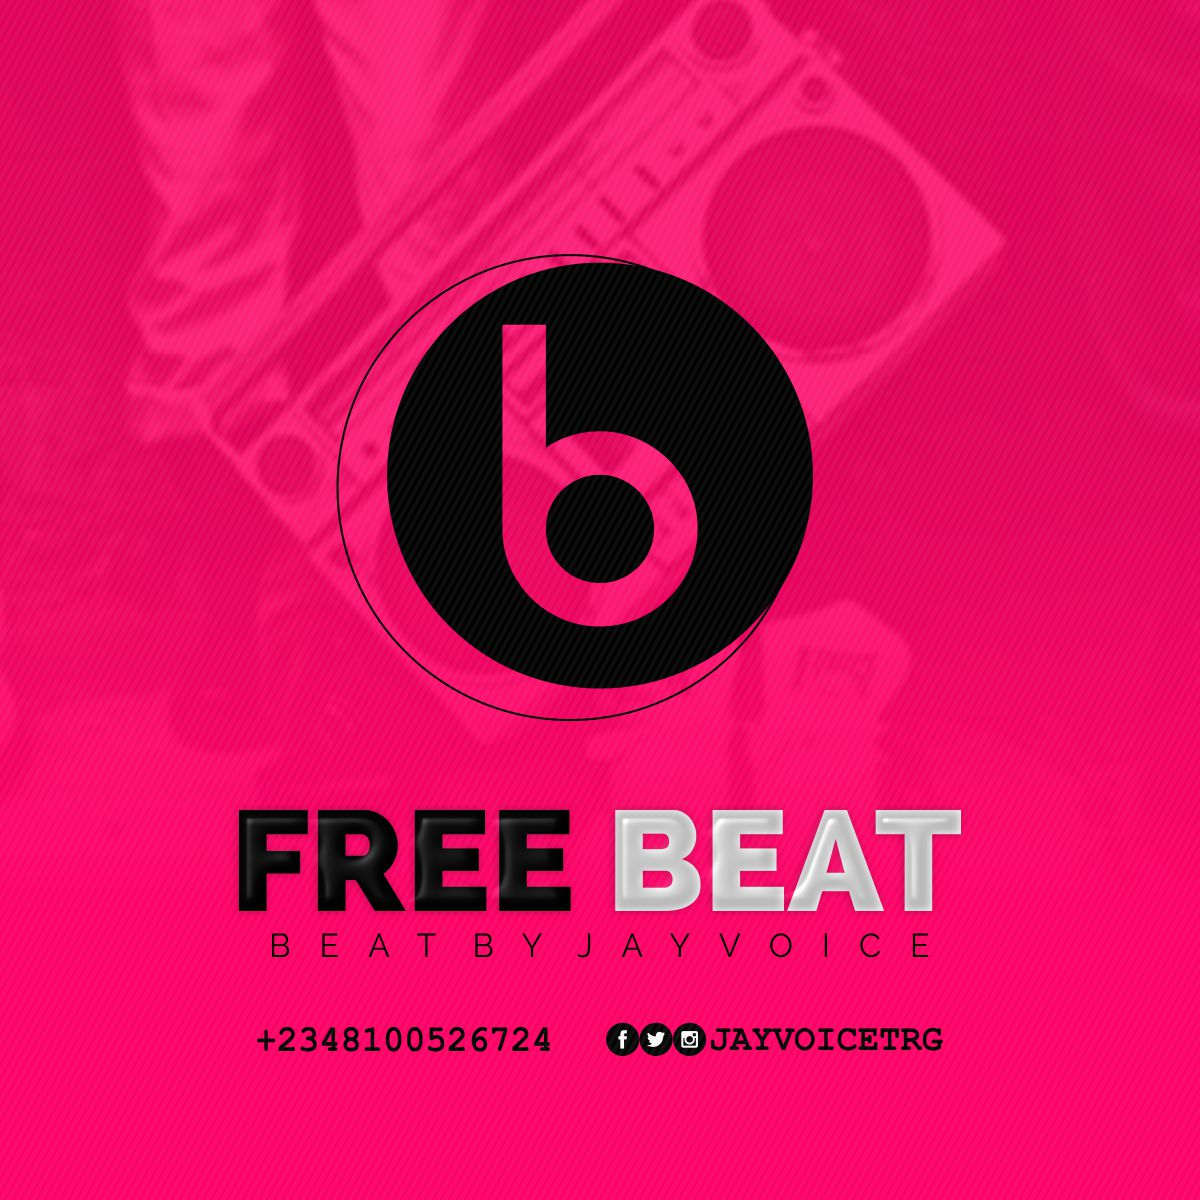 [freebeat] June 7 afro beat by Jayvoice